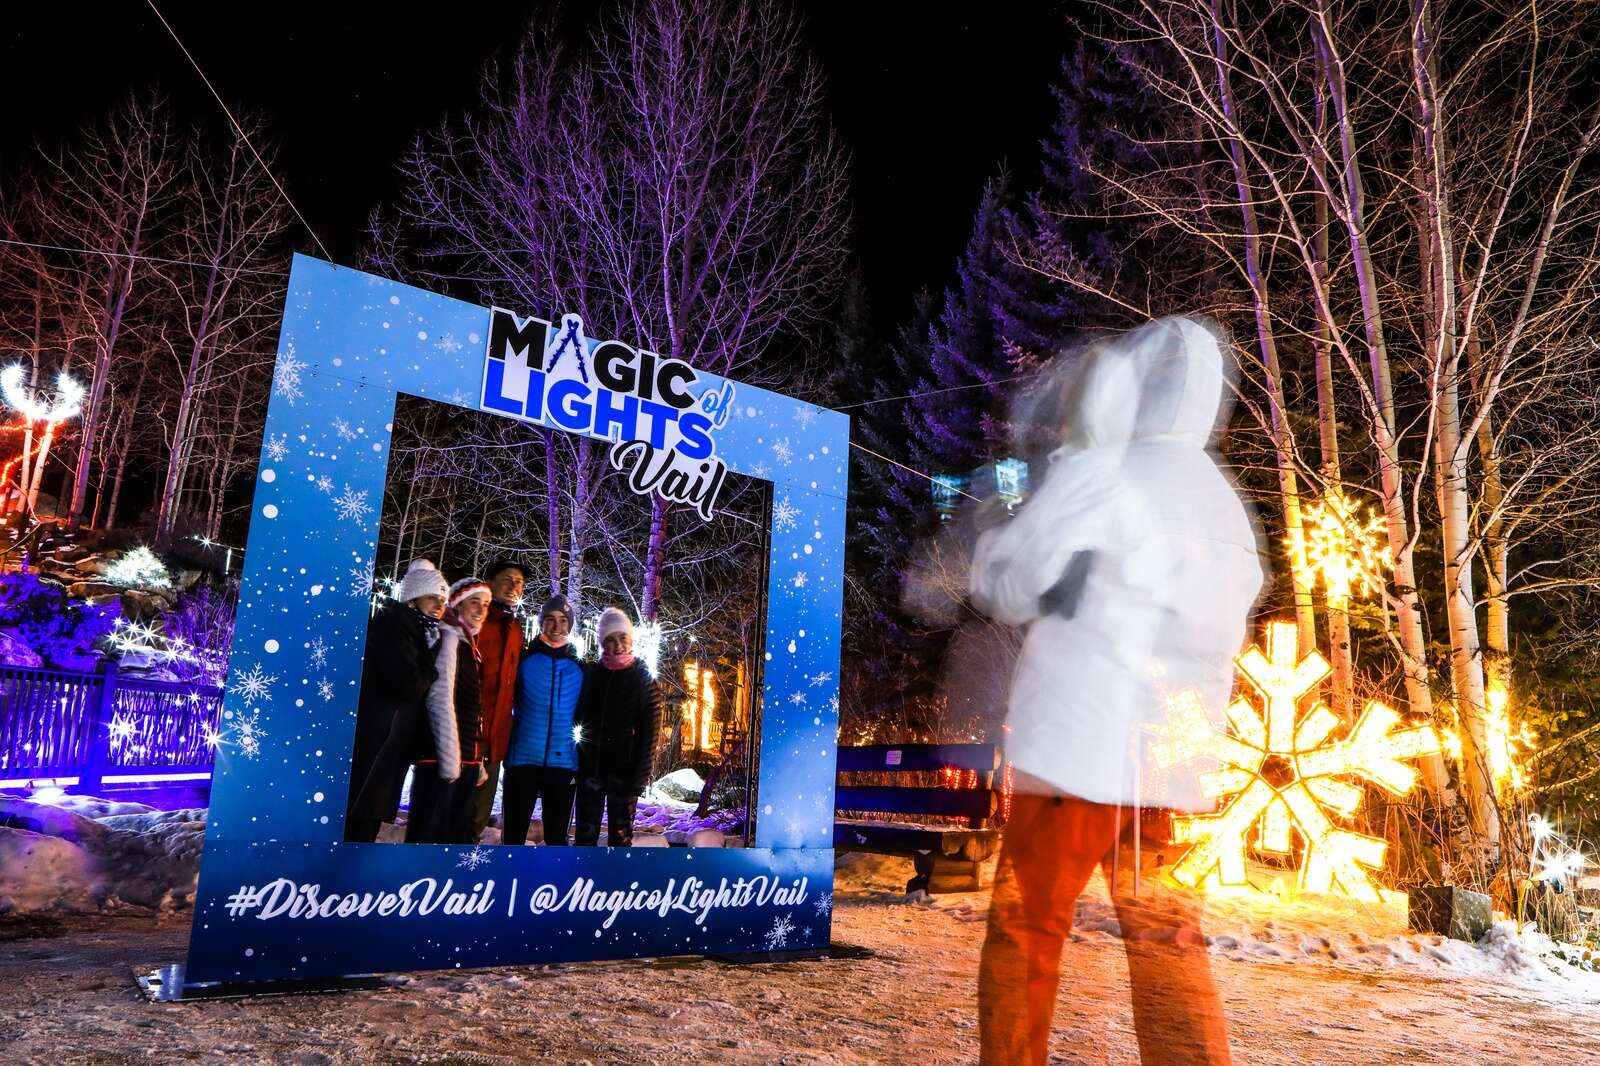 There are plenty of photo opportunities for the Magic of Lights Vail Thursday in Vail. The event opens to the public today and runs through the end of January.